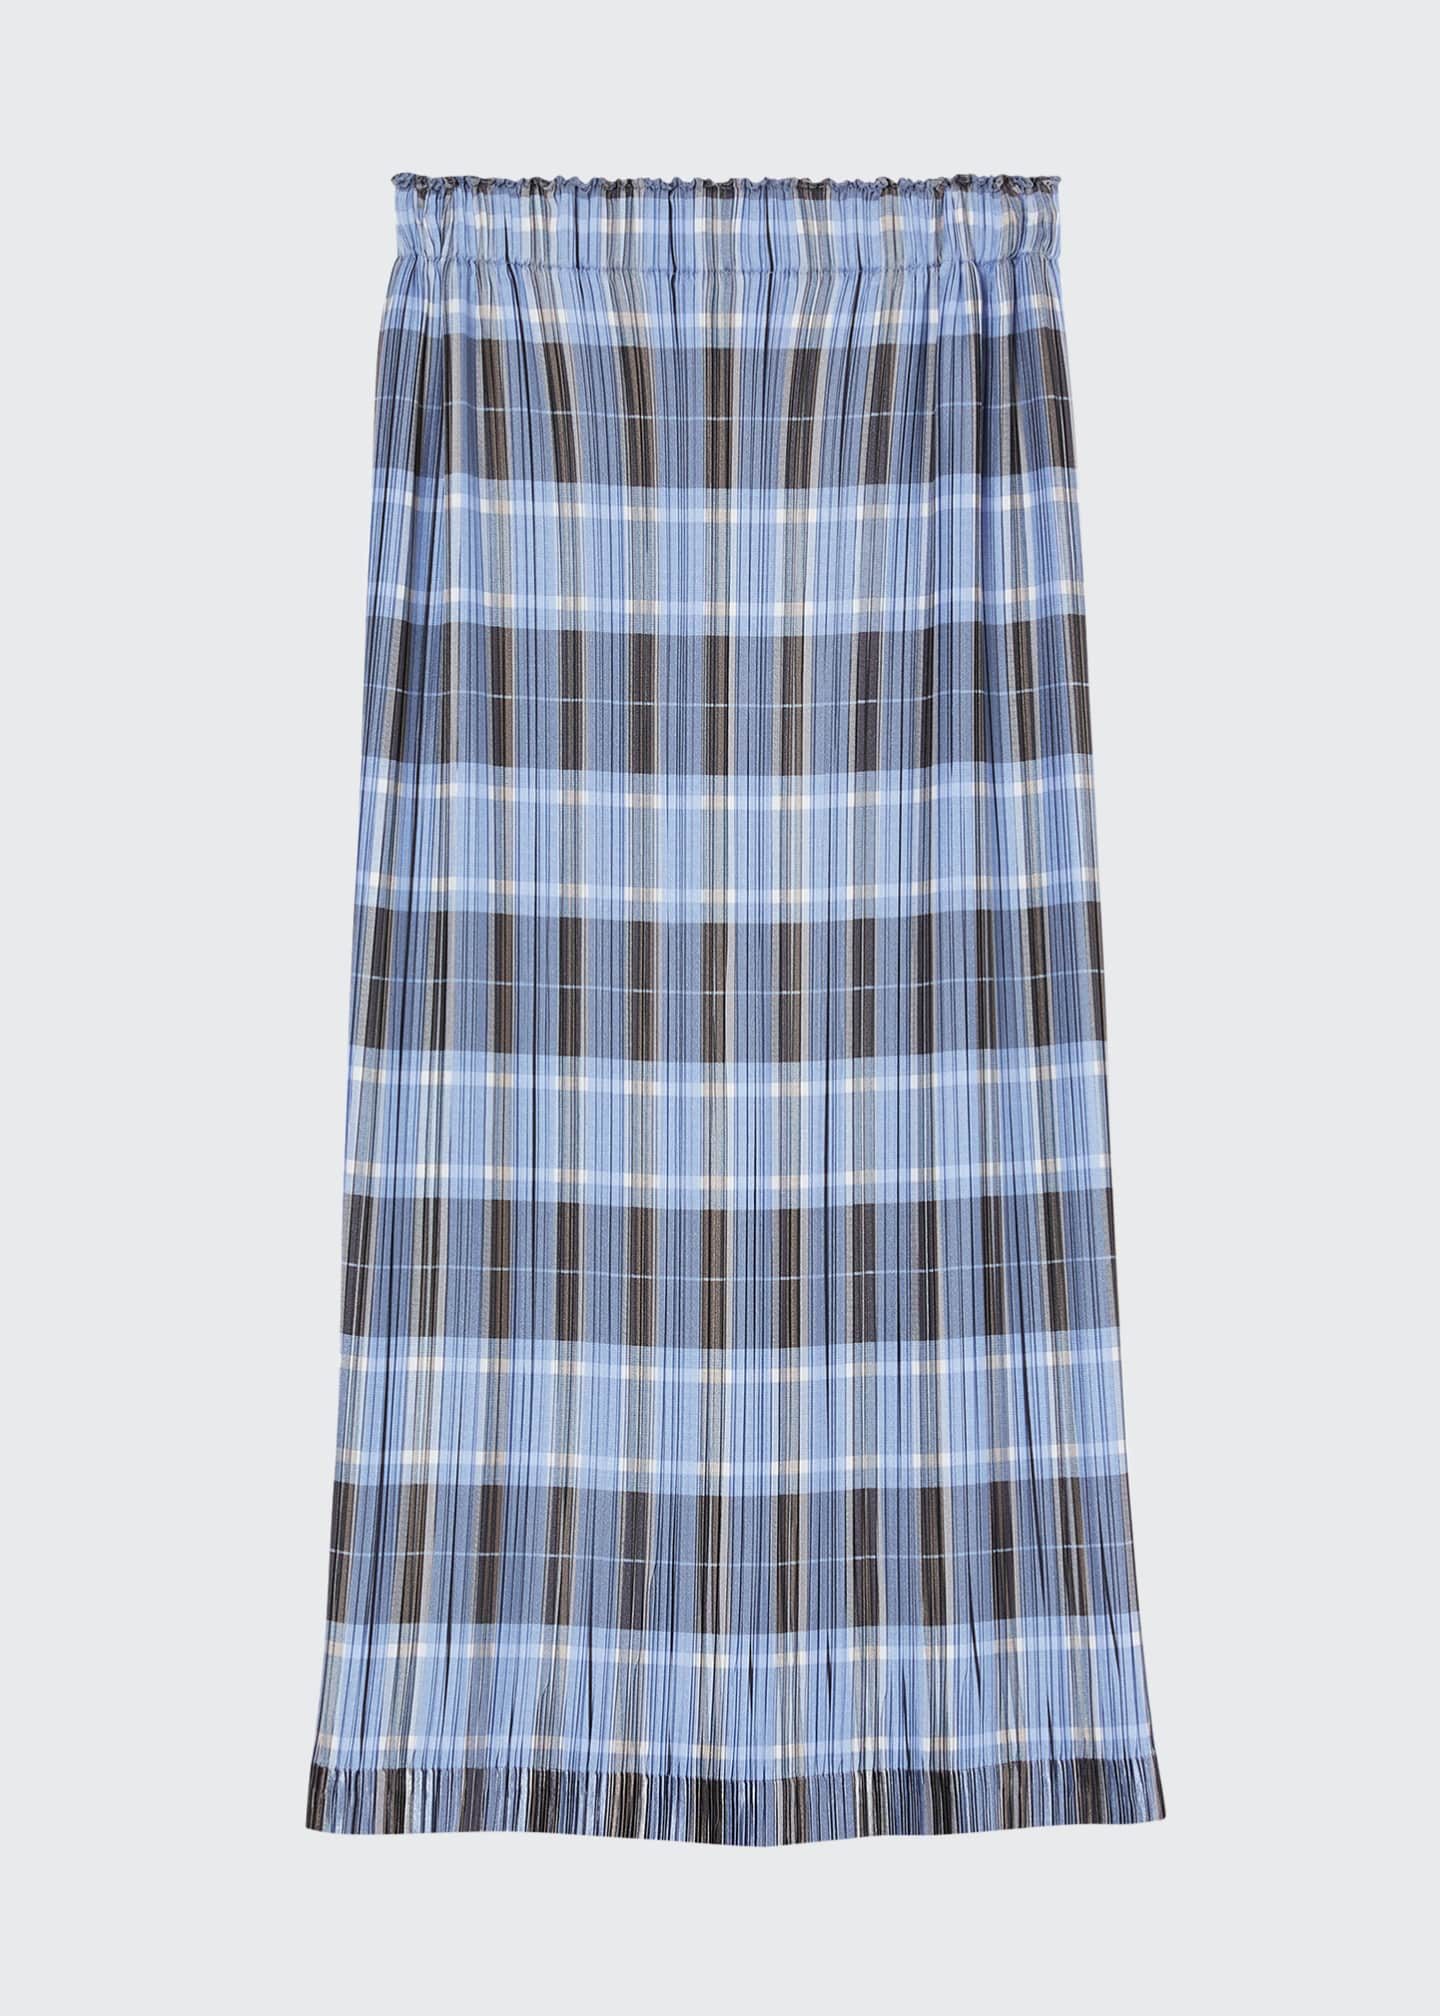 Image 5 of 5: Allover Plisse Pleated Check Pencil Skirt